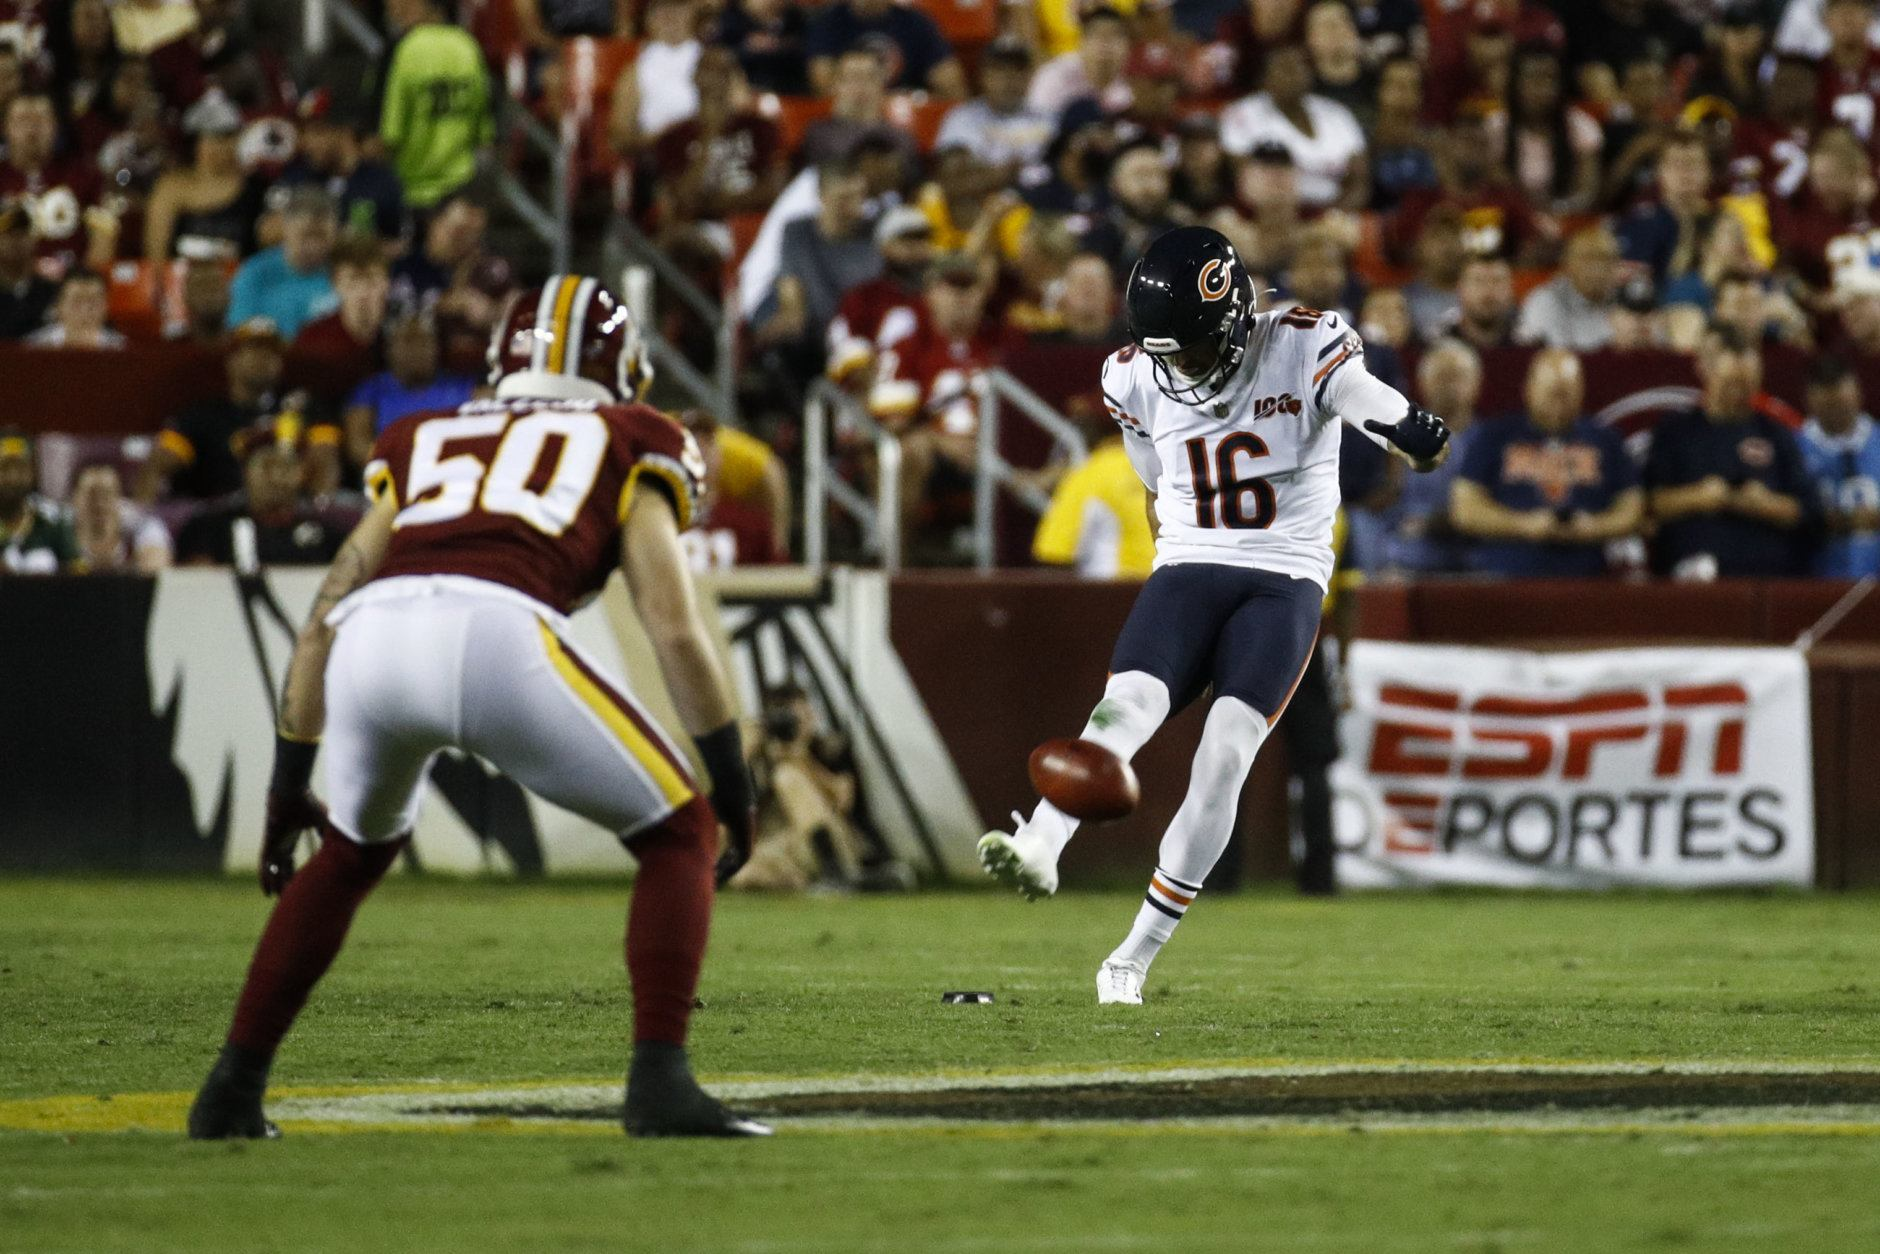 Chicago Bears punter Pat O'Donnell (16) kicks the ball during the first half of an NFL football game against the Washington Redskins, Monday, Sept. 23, 2019, in Landover, Md. (AP Photo/Patrick Semansky)